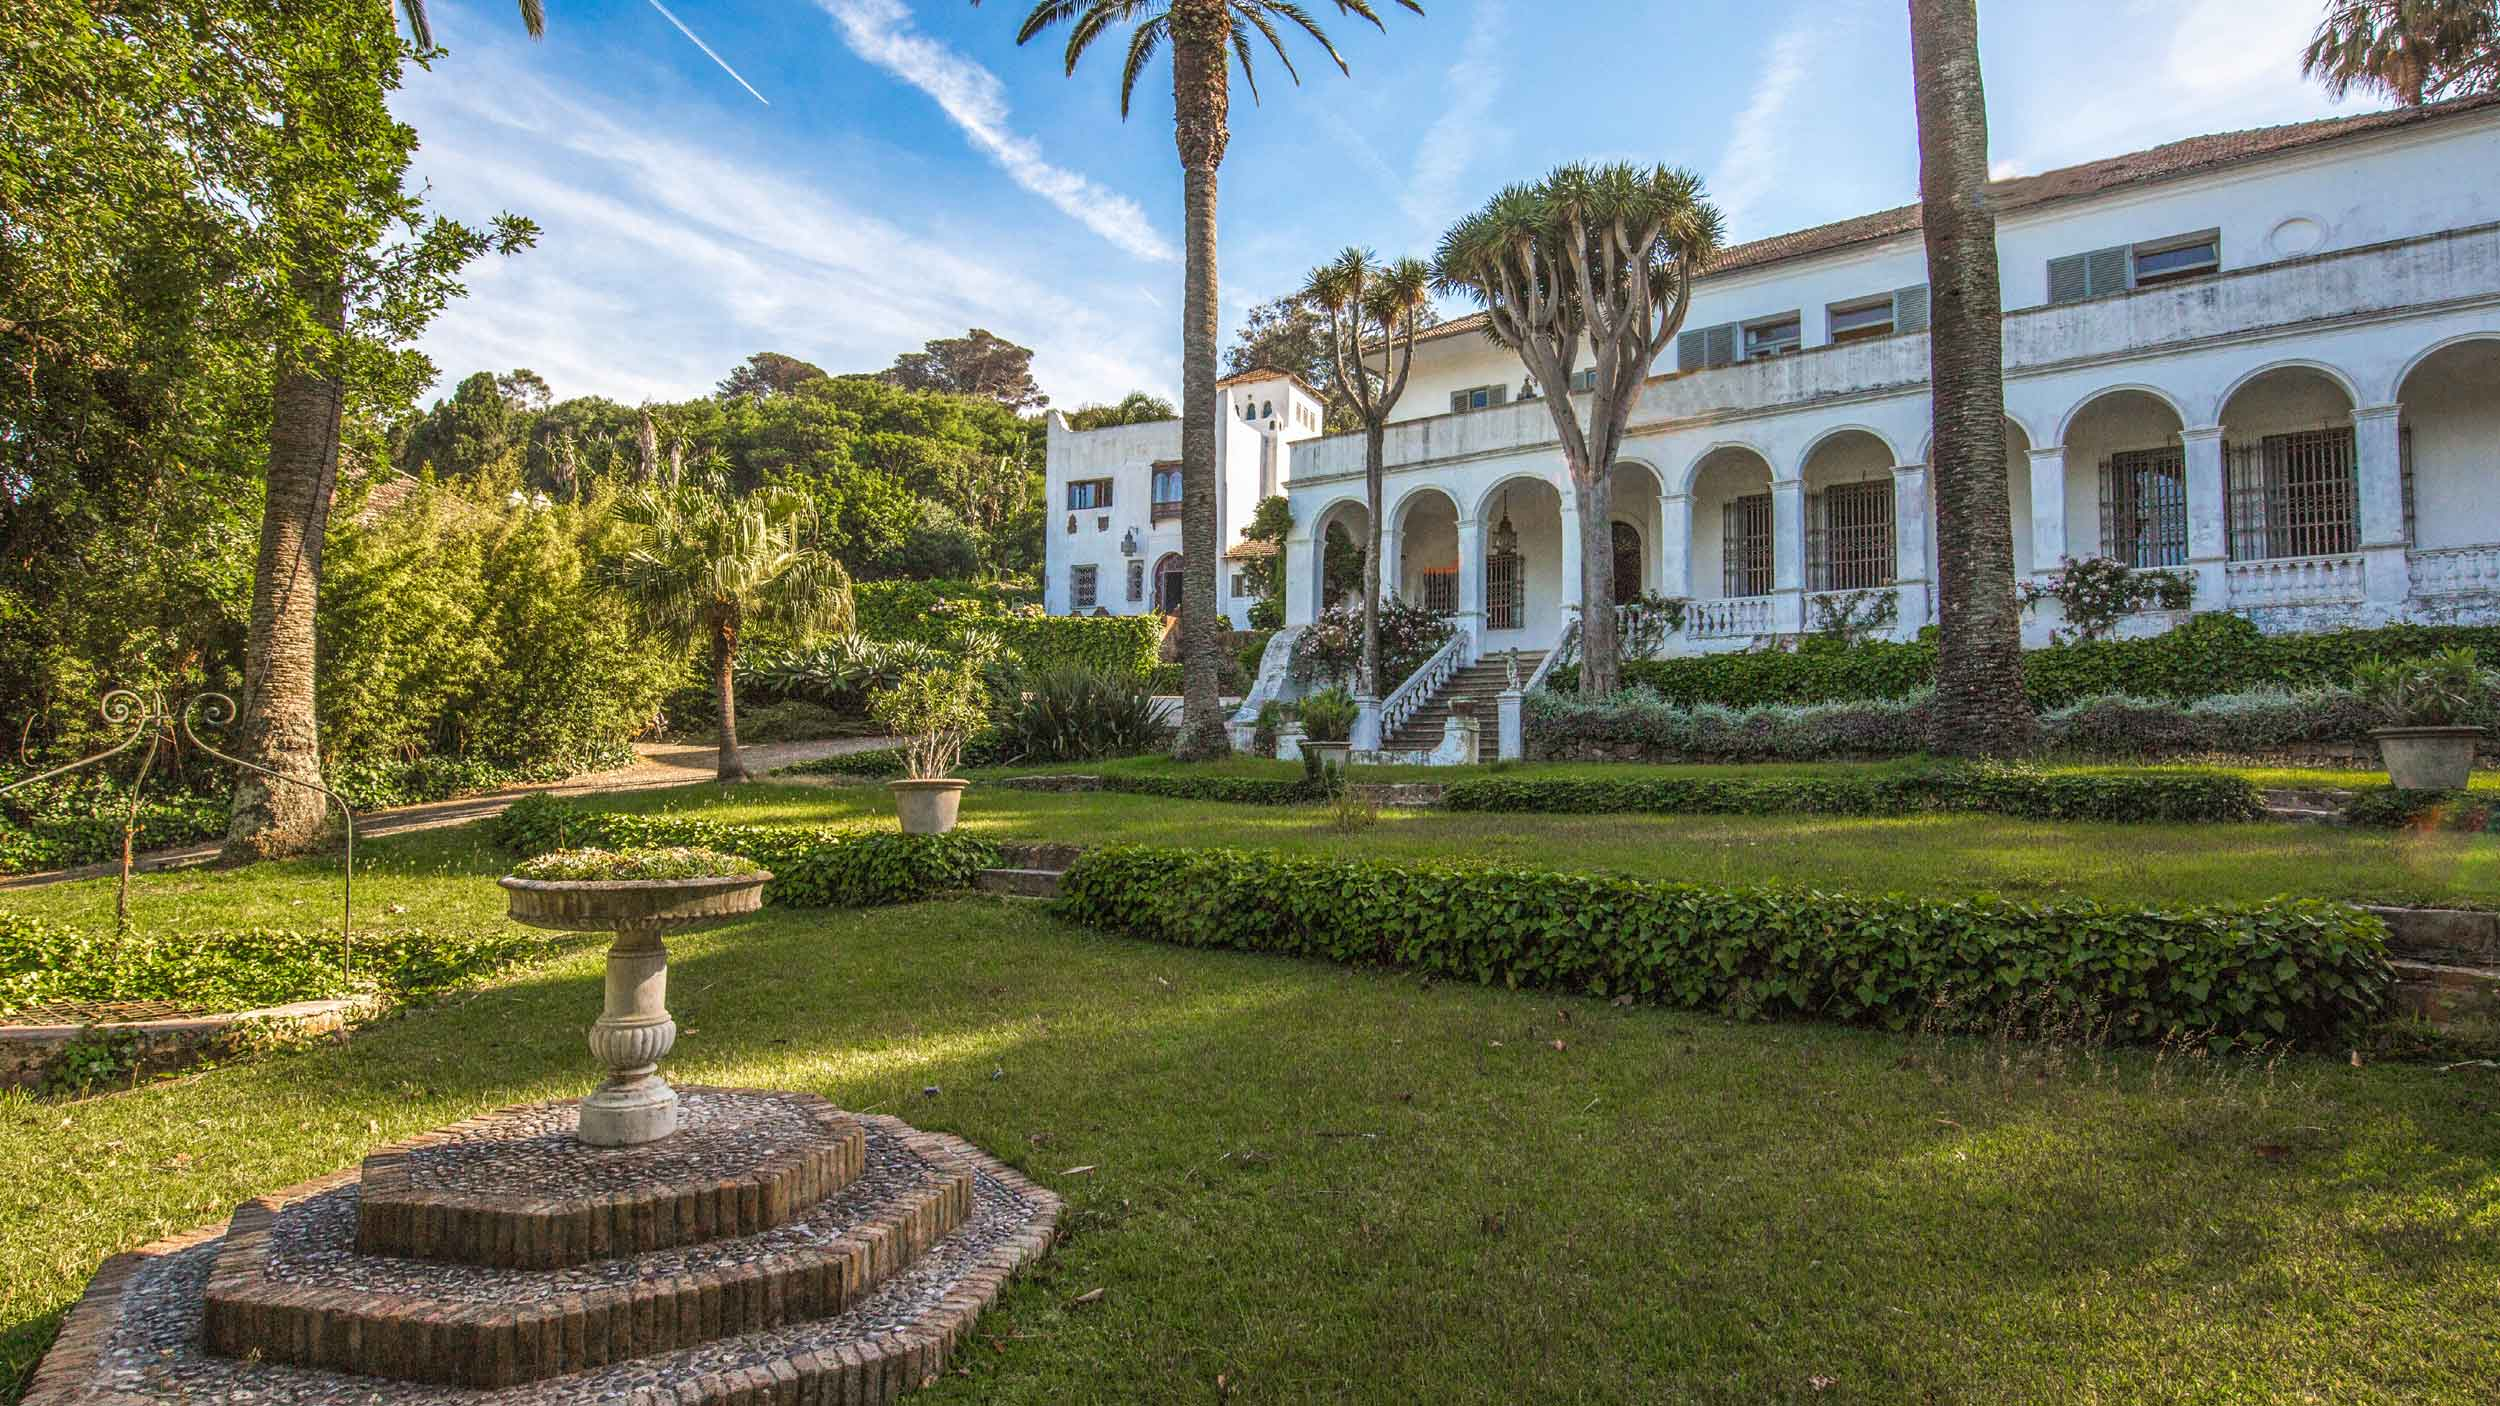 This enchanting colonial palace in Tangier was the place of inspiration for Chilean hyperrealist painter Claudio Bravo.